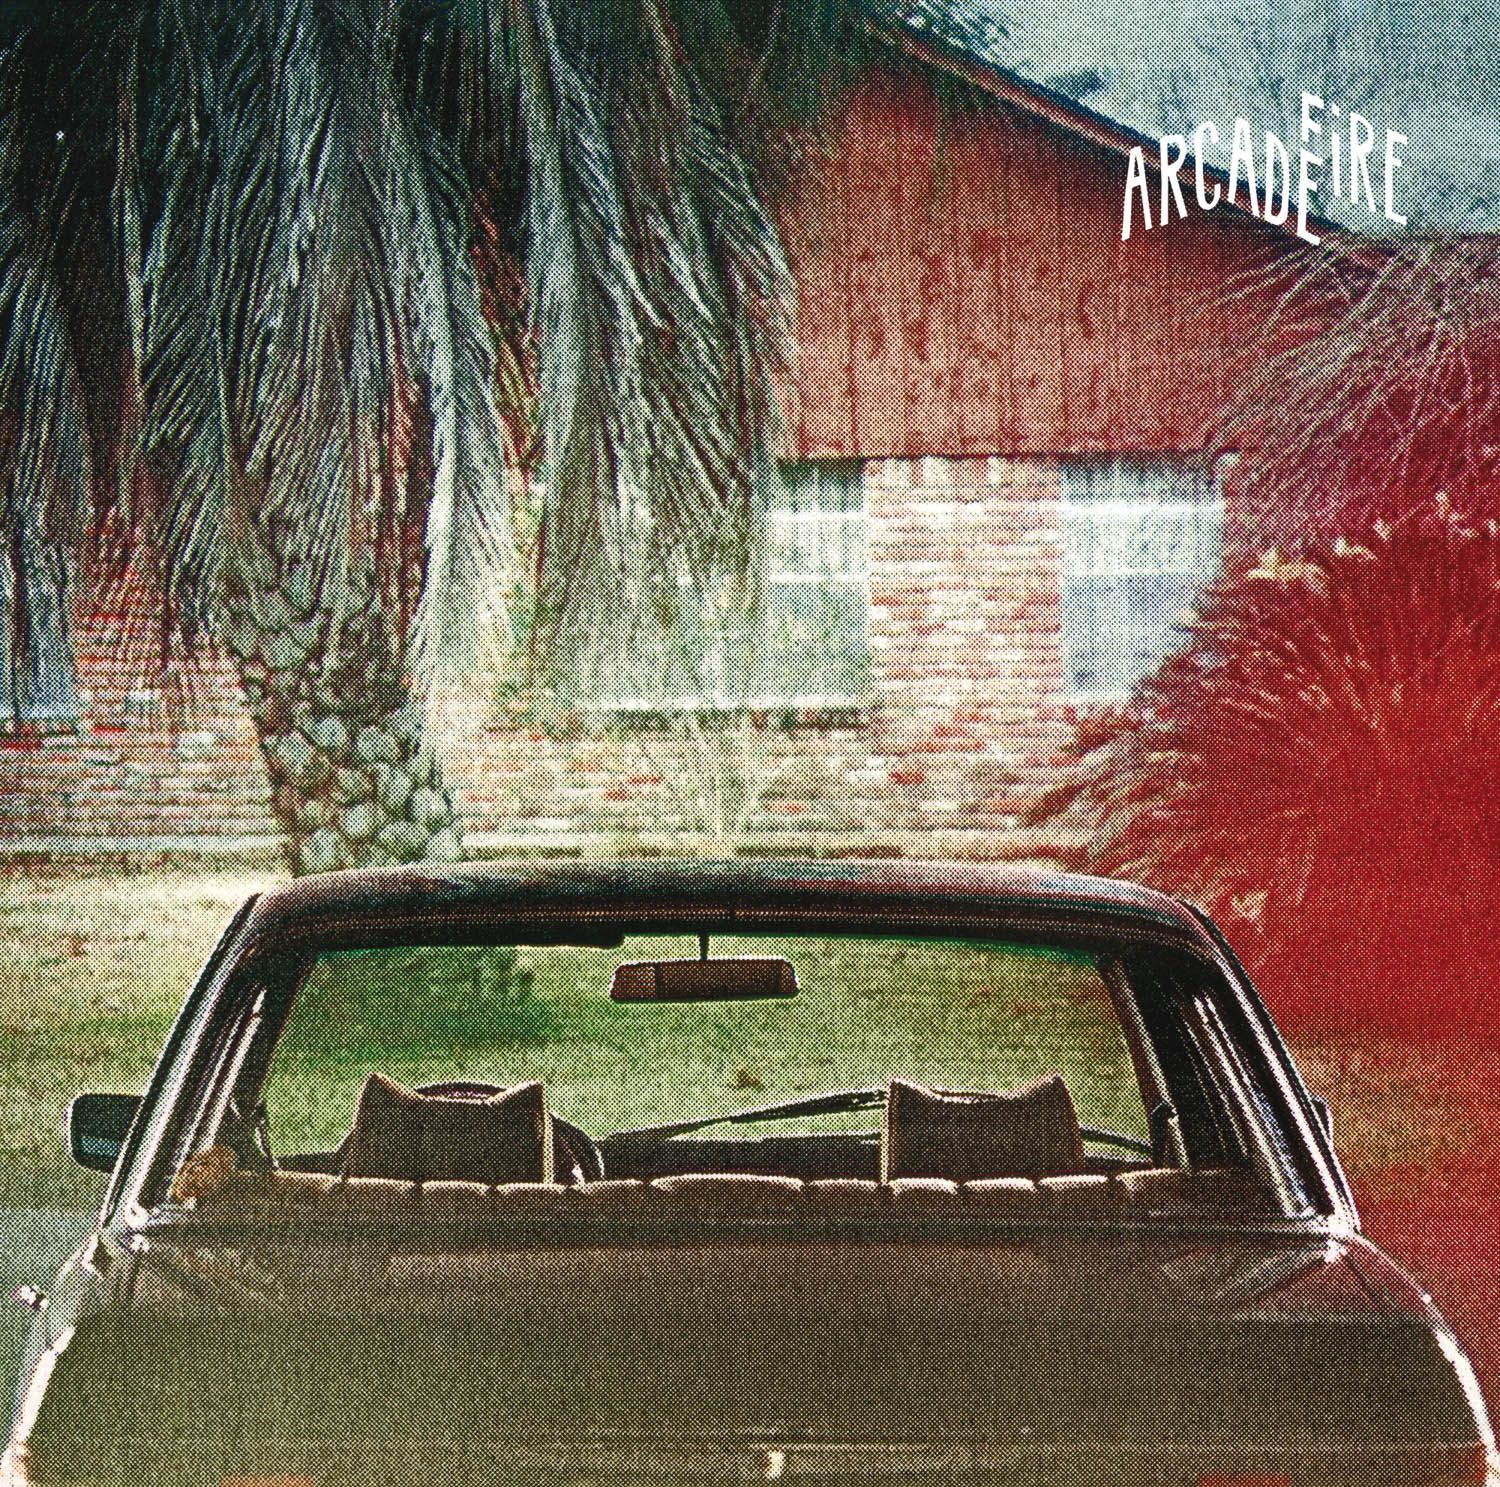 Arcade Fire - The Suburbs album cover